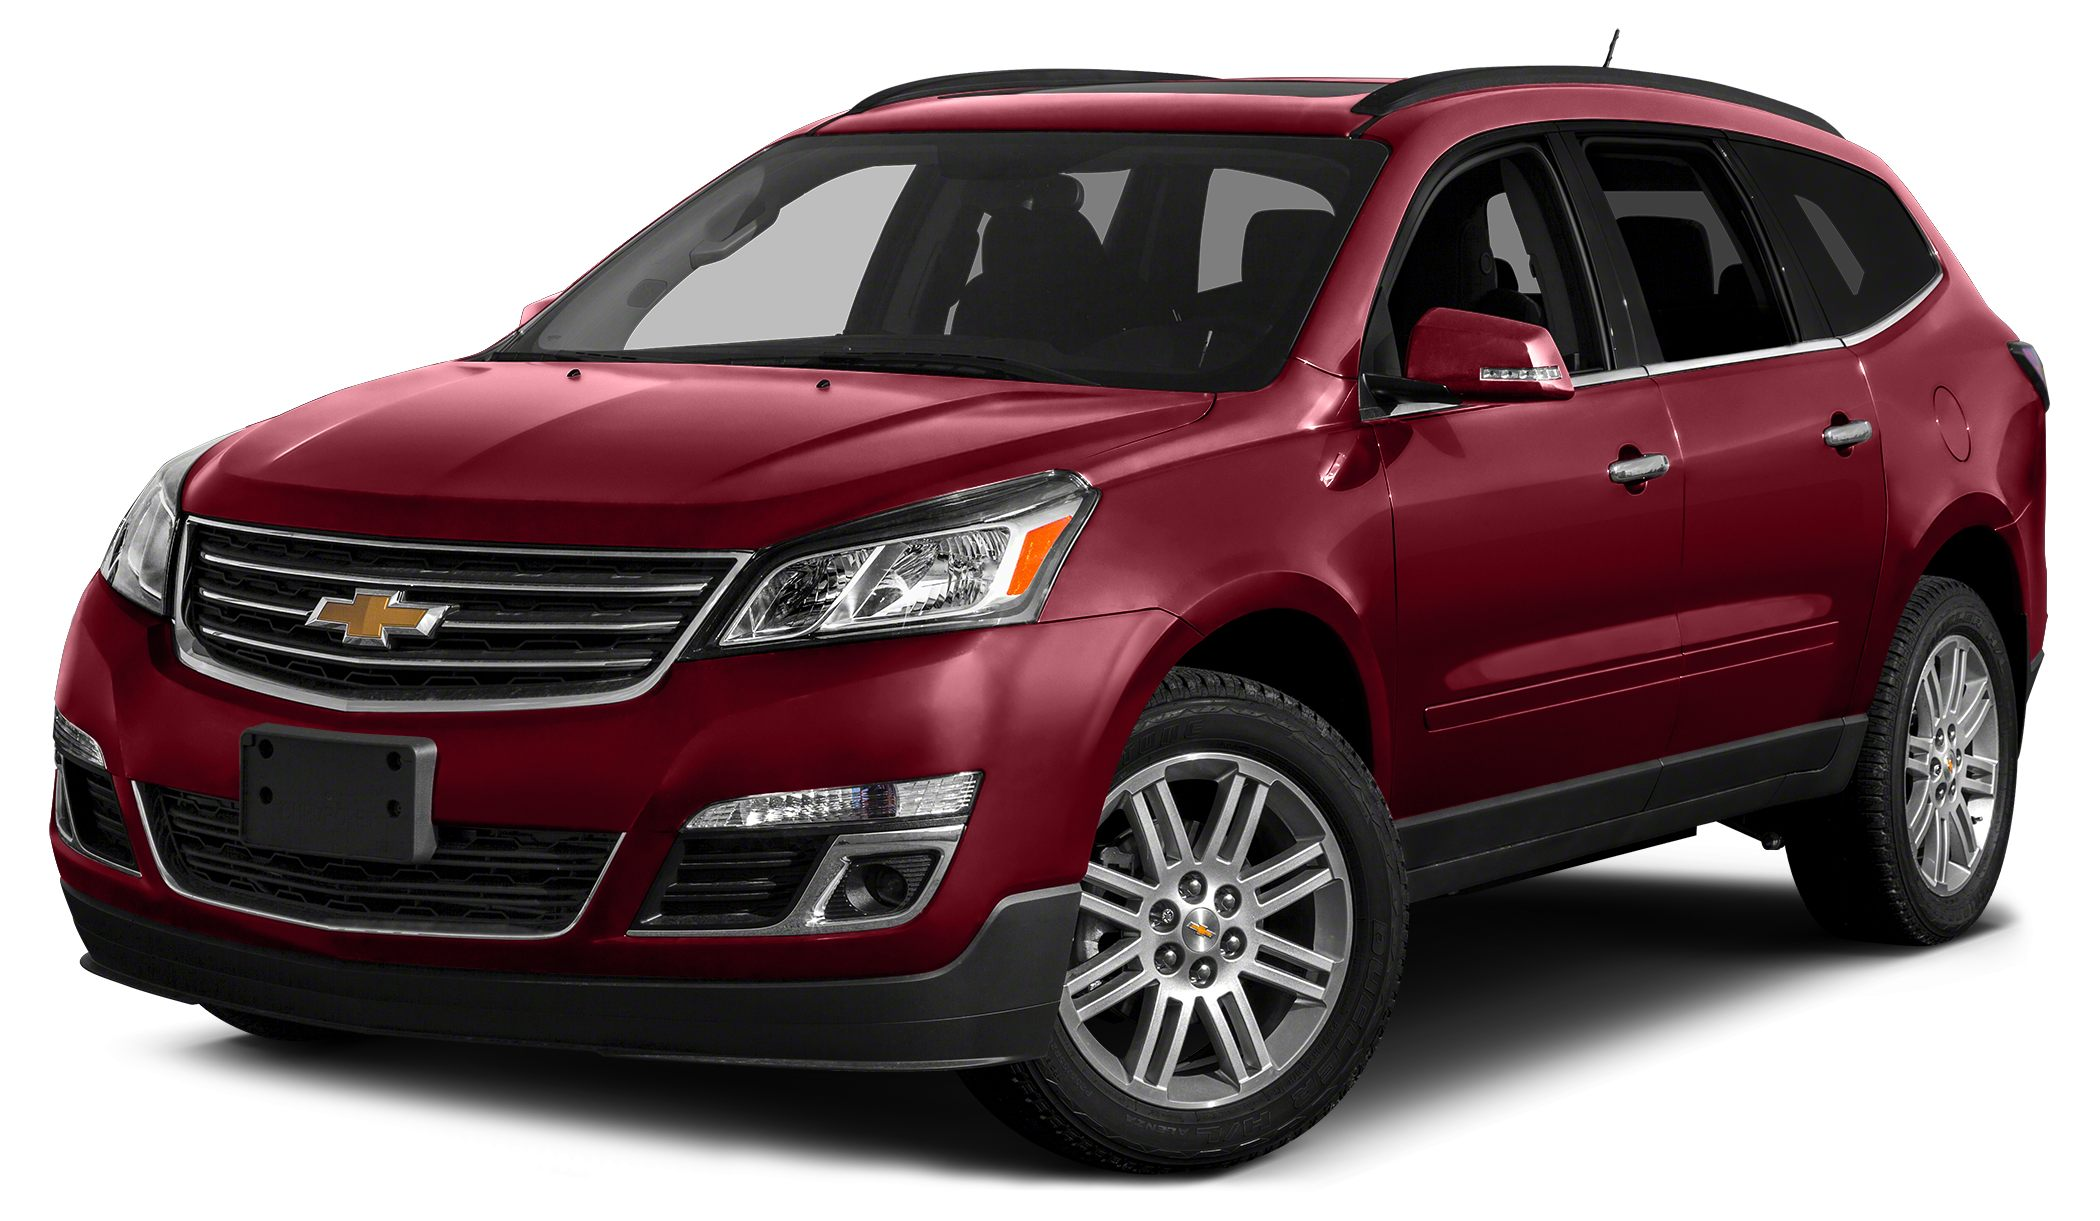 2014 Chevrolet Traverse LT w1LT Bradshaw Greer means business Right SUV Right price Confused a